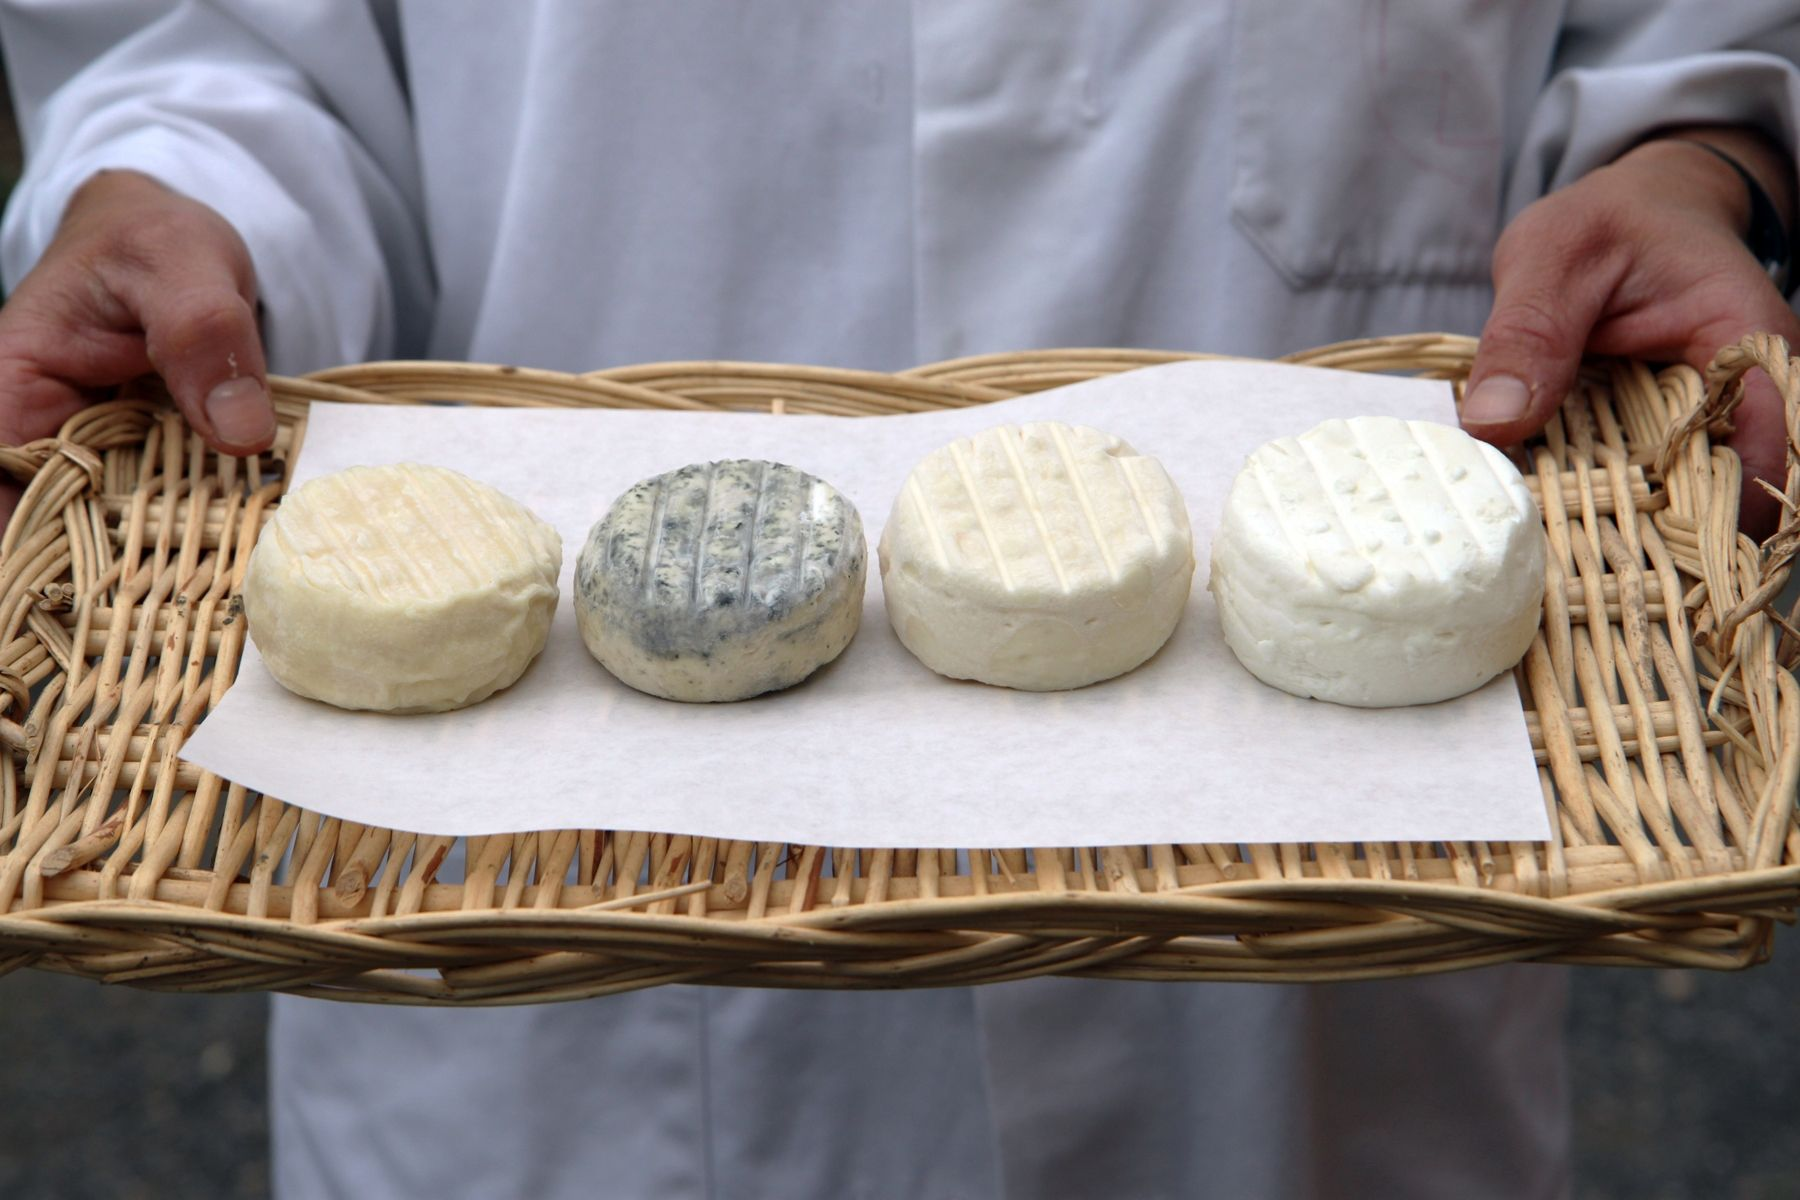 Vive le Fromage! French cheese, Cheese, Food